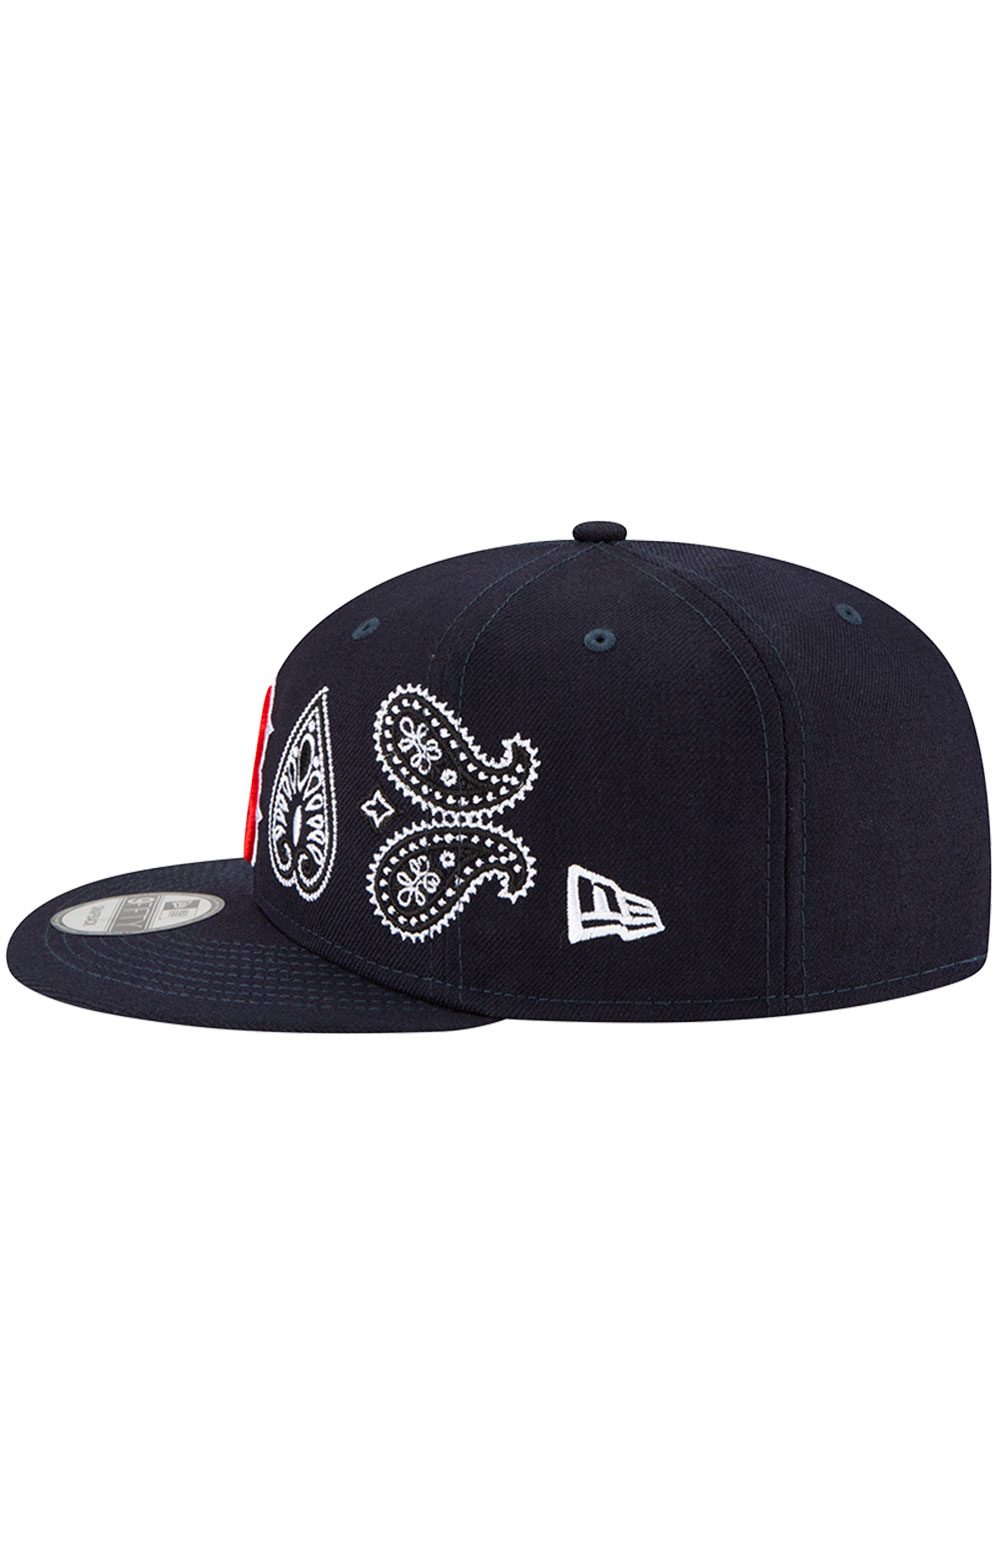 Boston Red Sox Paisley Elements 9Fifty Snap-Back Hat - Black 6